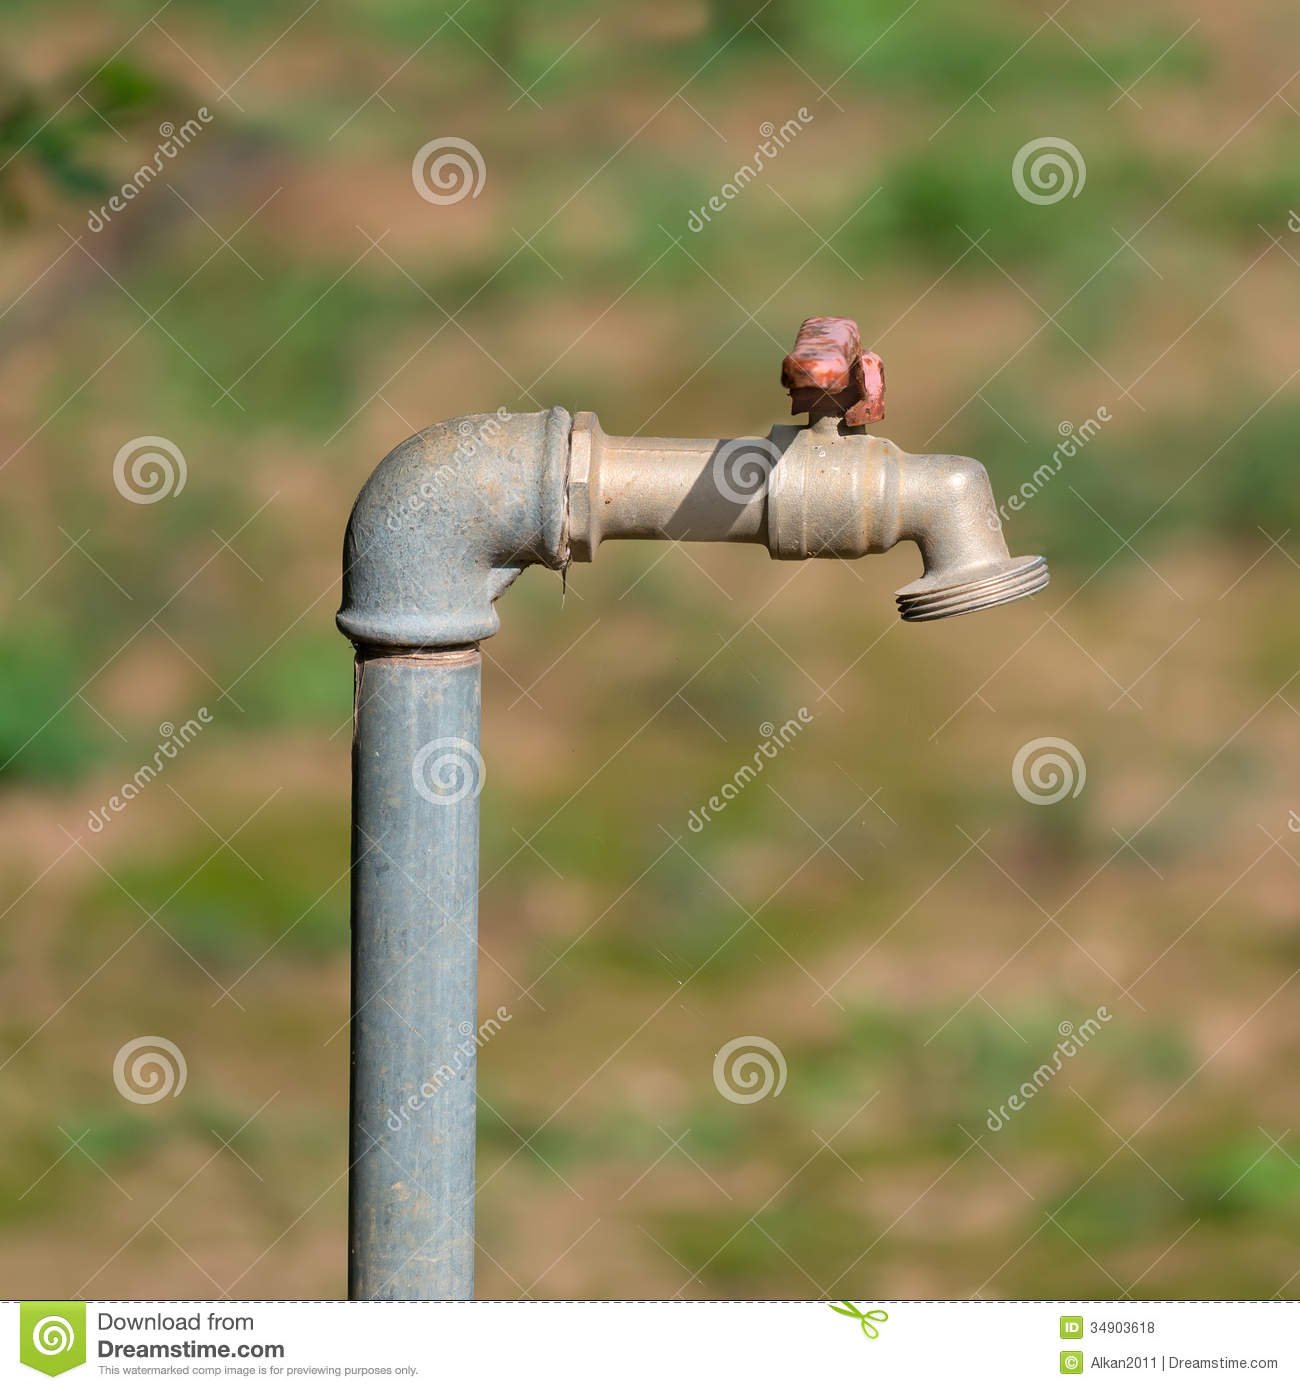 Vintage Garden Spigot Stock Photo Image 75109068